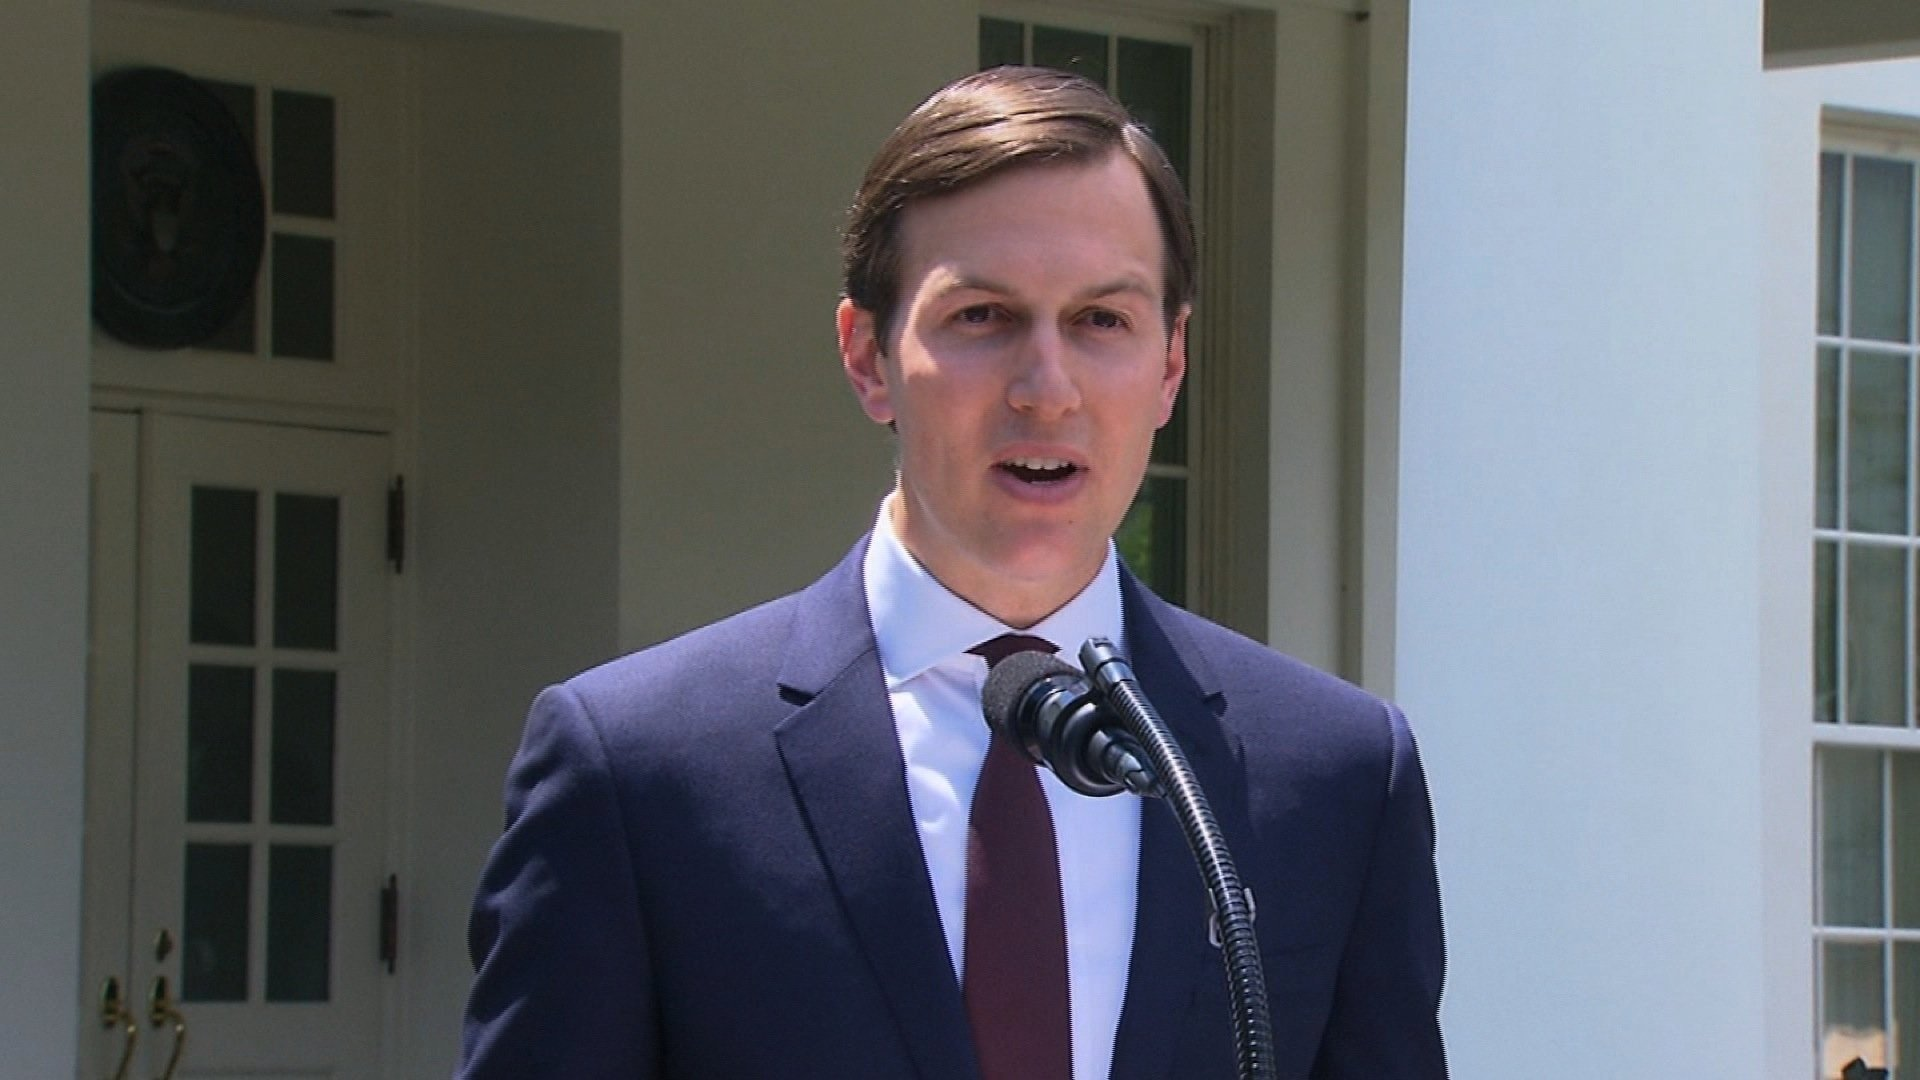 Jared Kushner is seen here speaking at the White House in 2017. (File Photo)